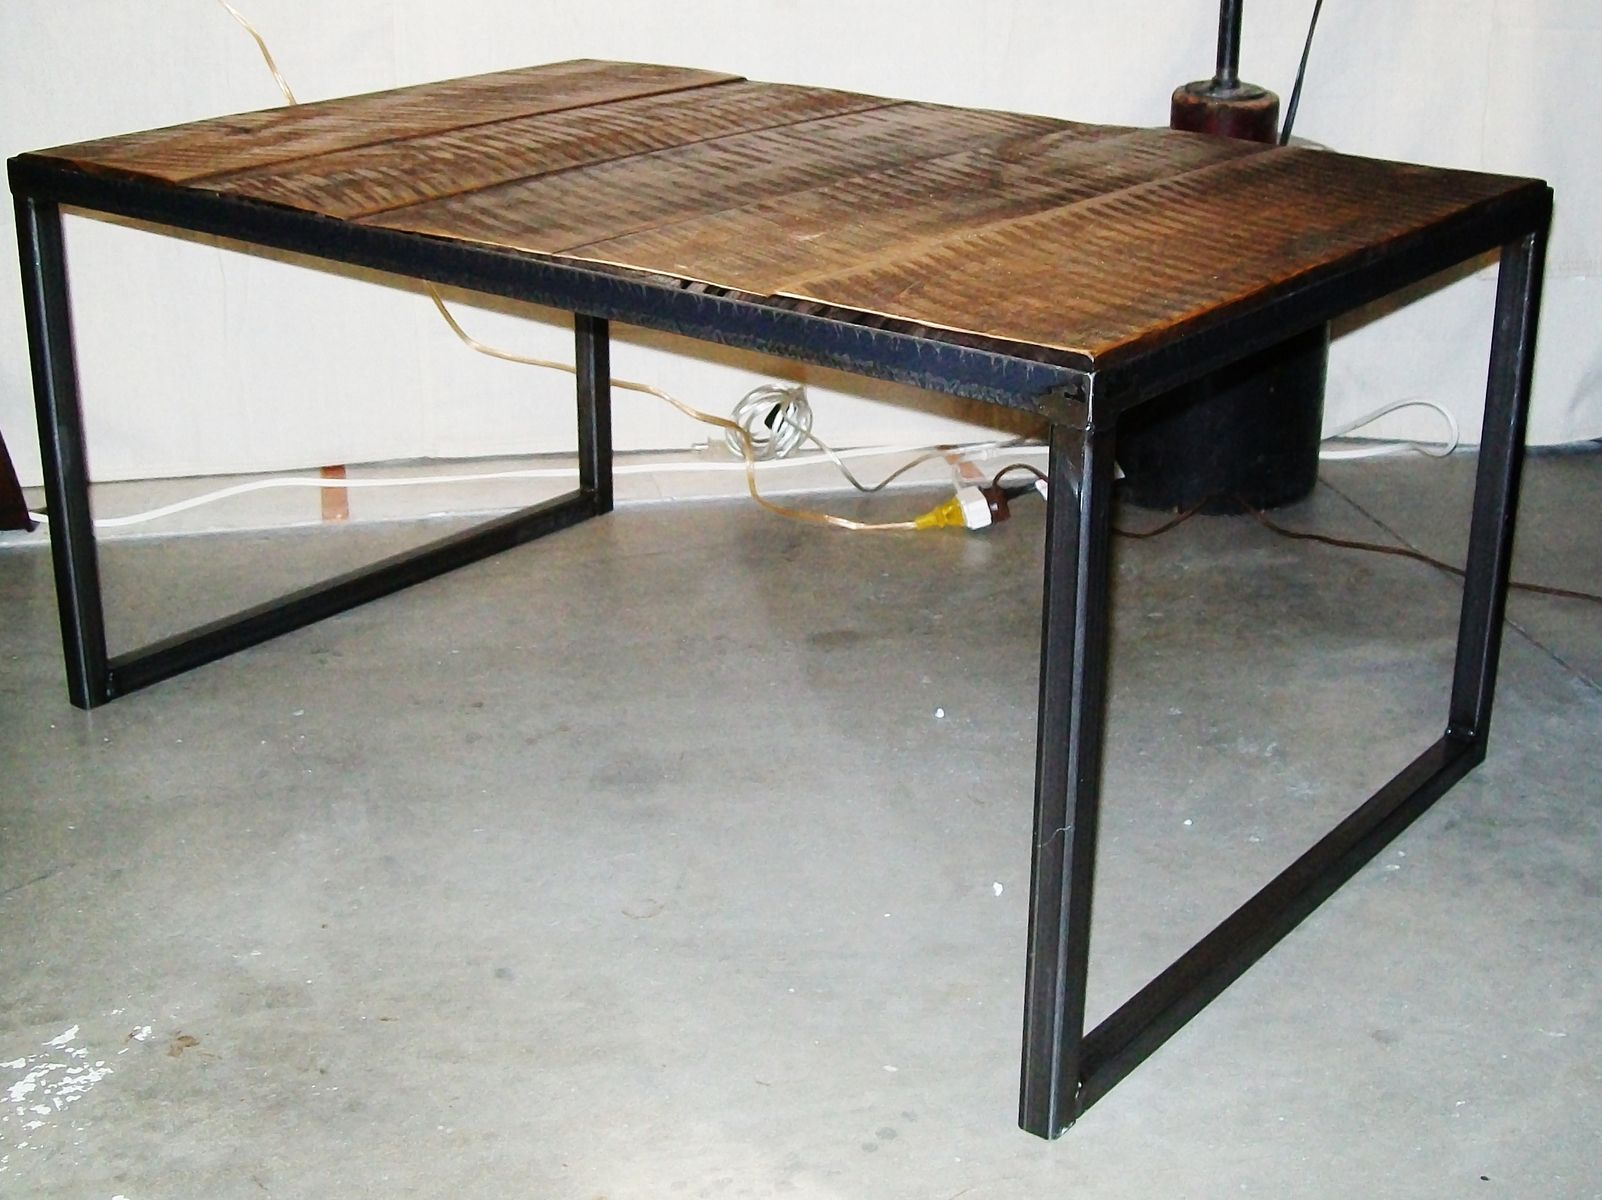 Handmade Industrial Wood & Steel Coffee Table By Lucah